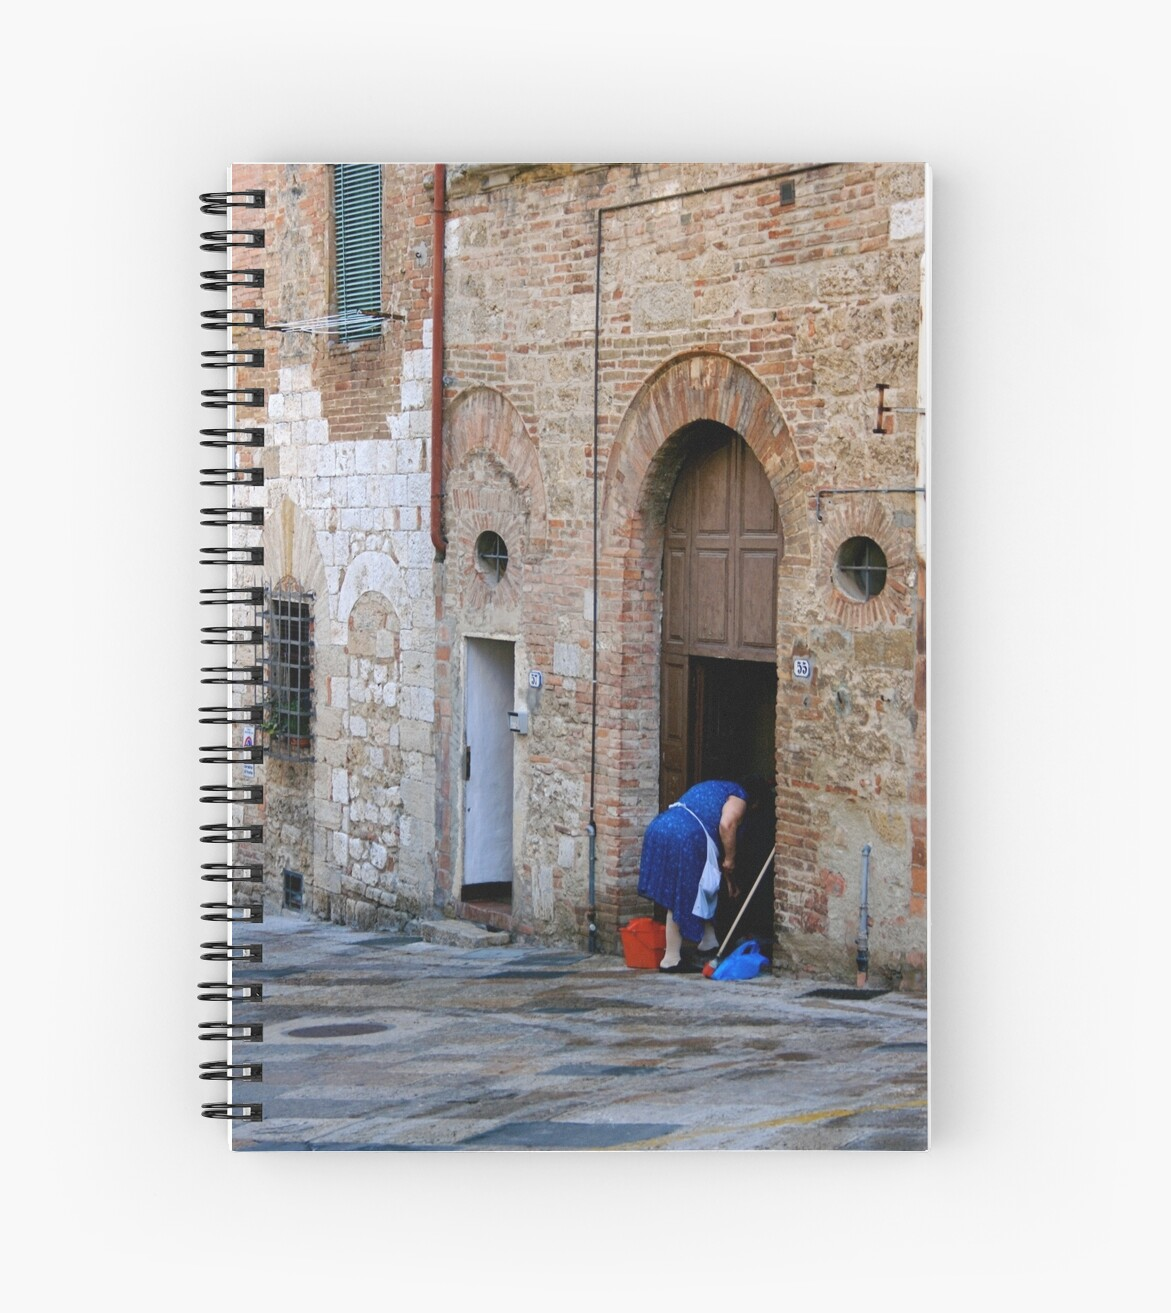 Woman Cleaning the Street Front, Italy by patti4glory